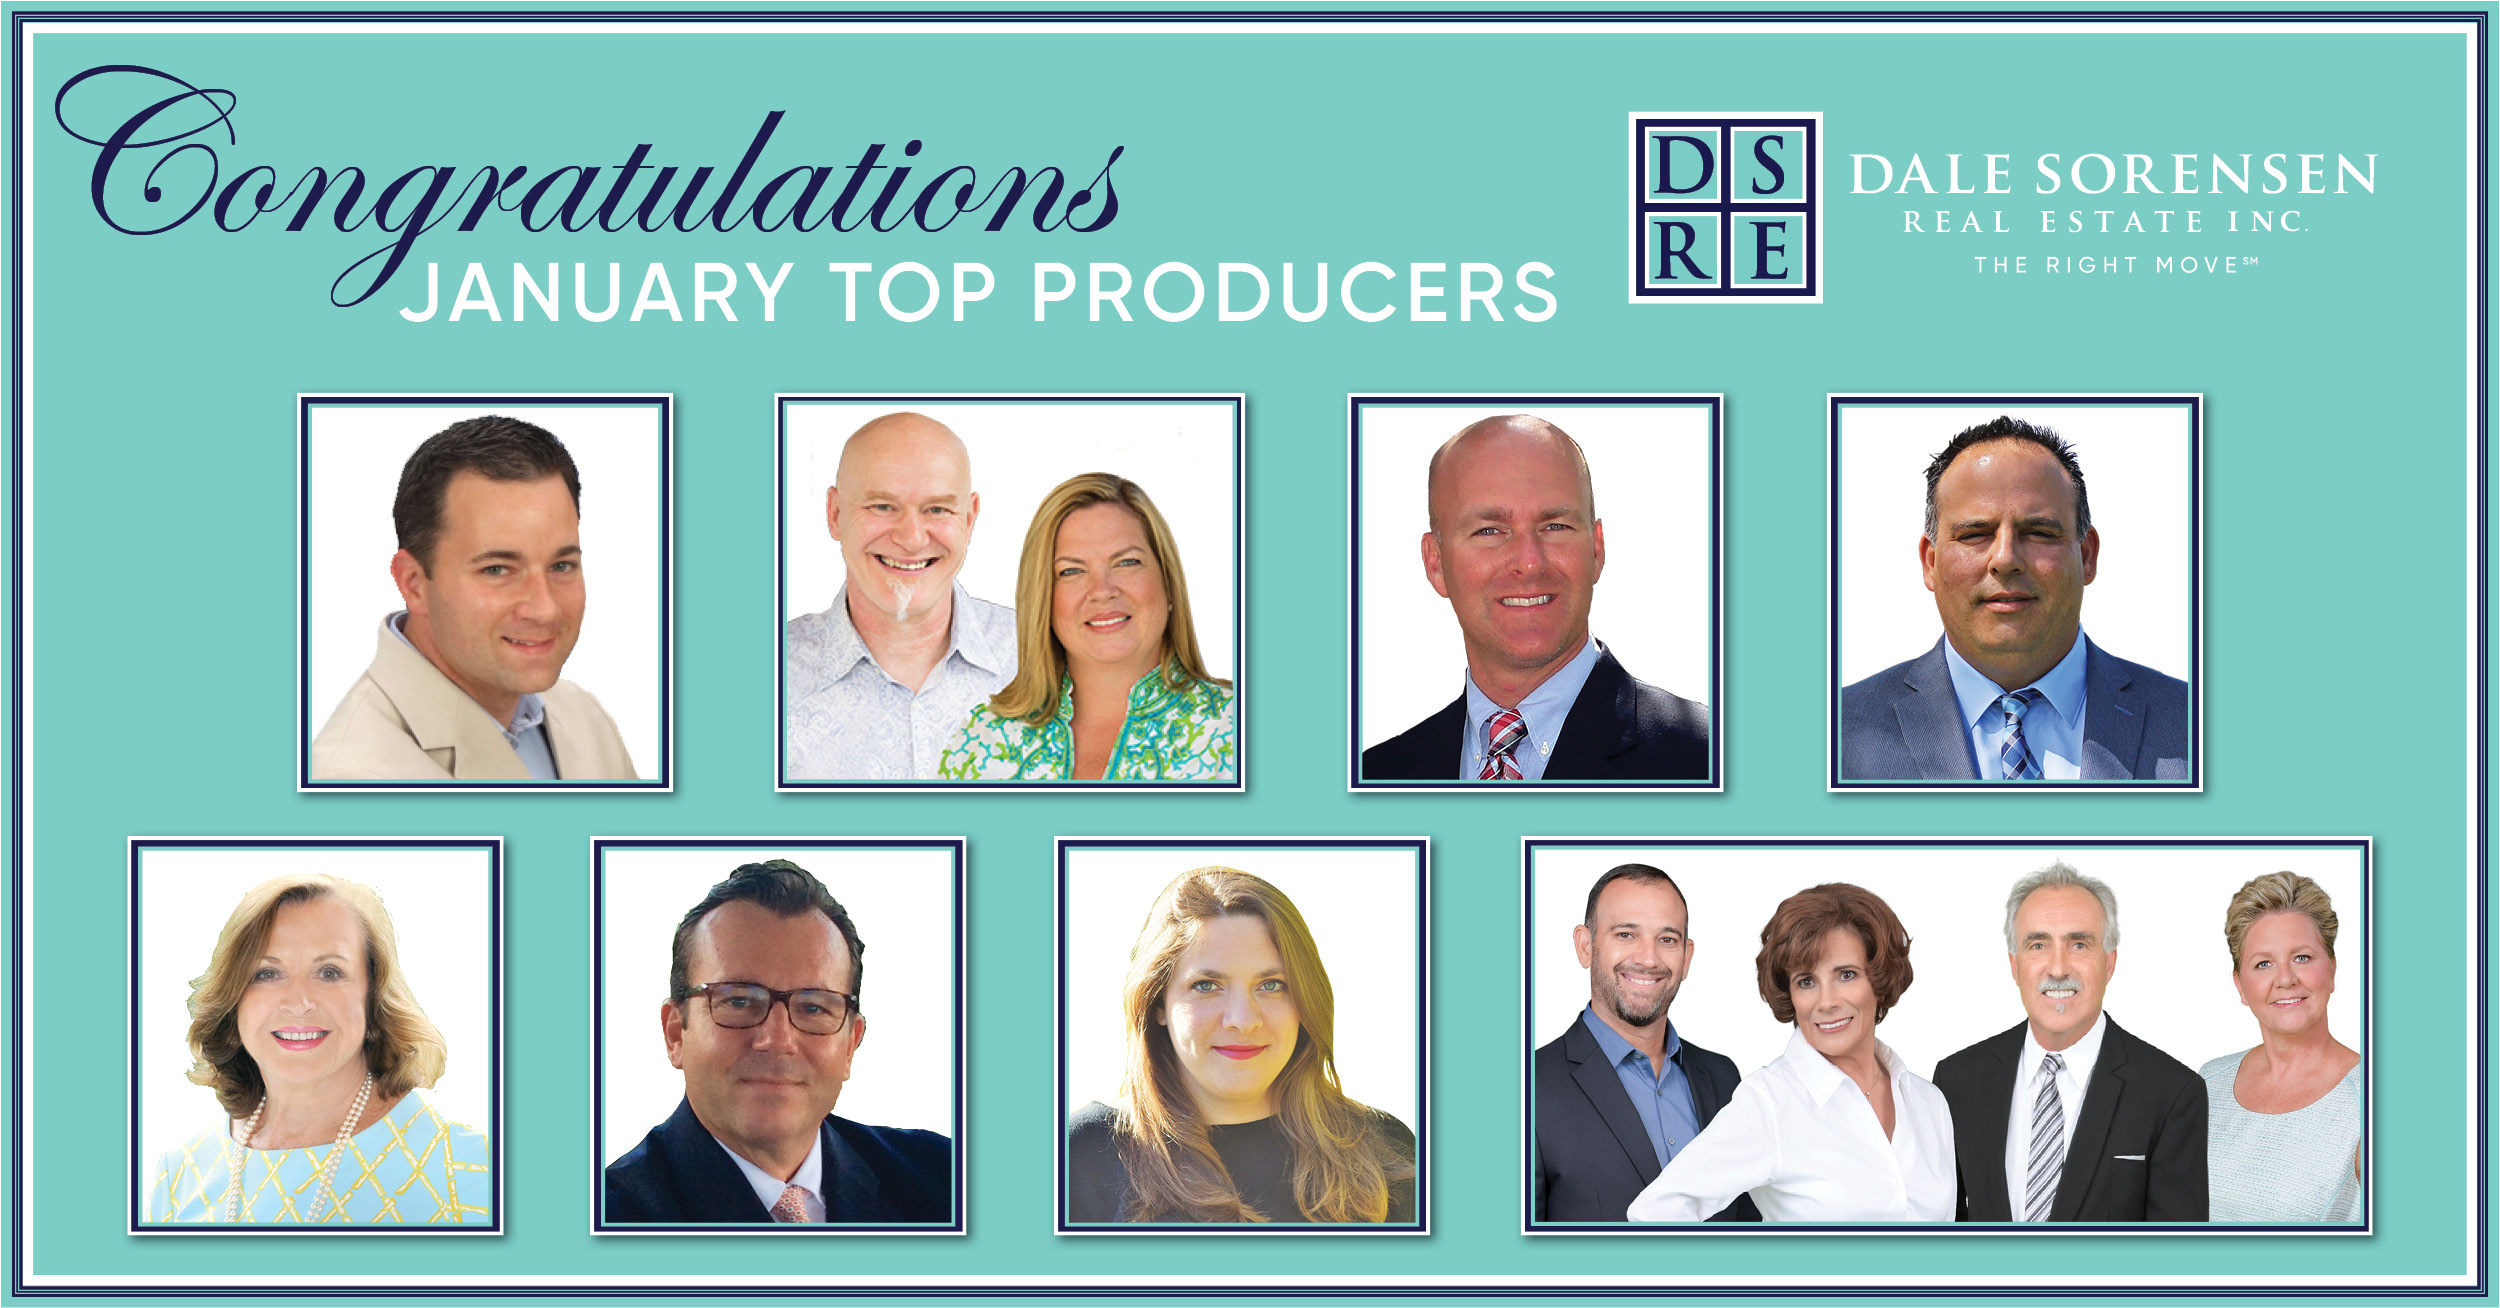 Congratulations January Top Producers DSRE Dale Sorensen Real Estate Inc. THE RIGHT MOVE